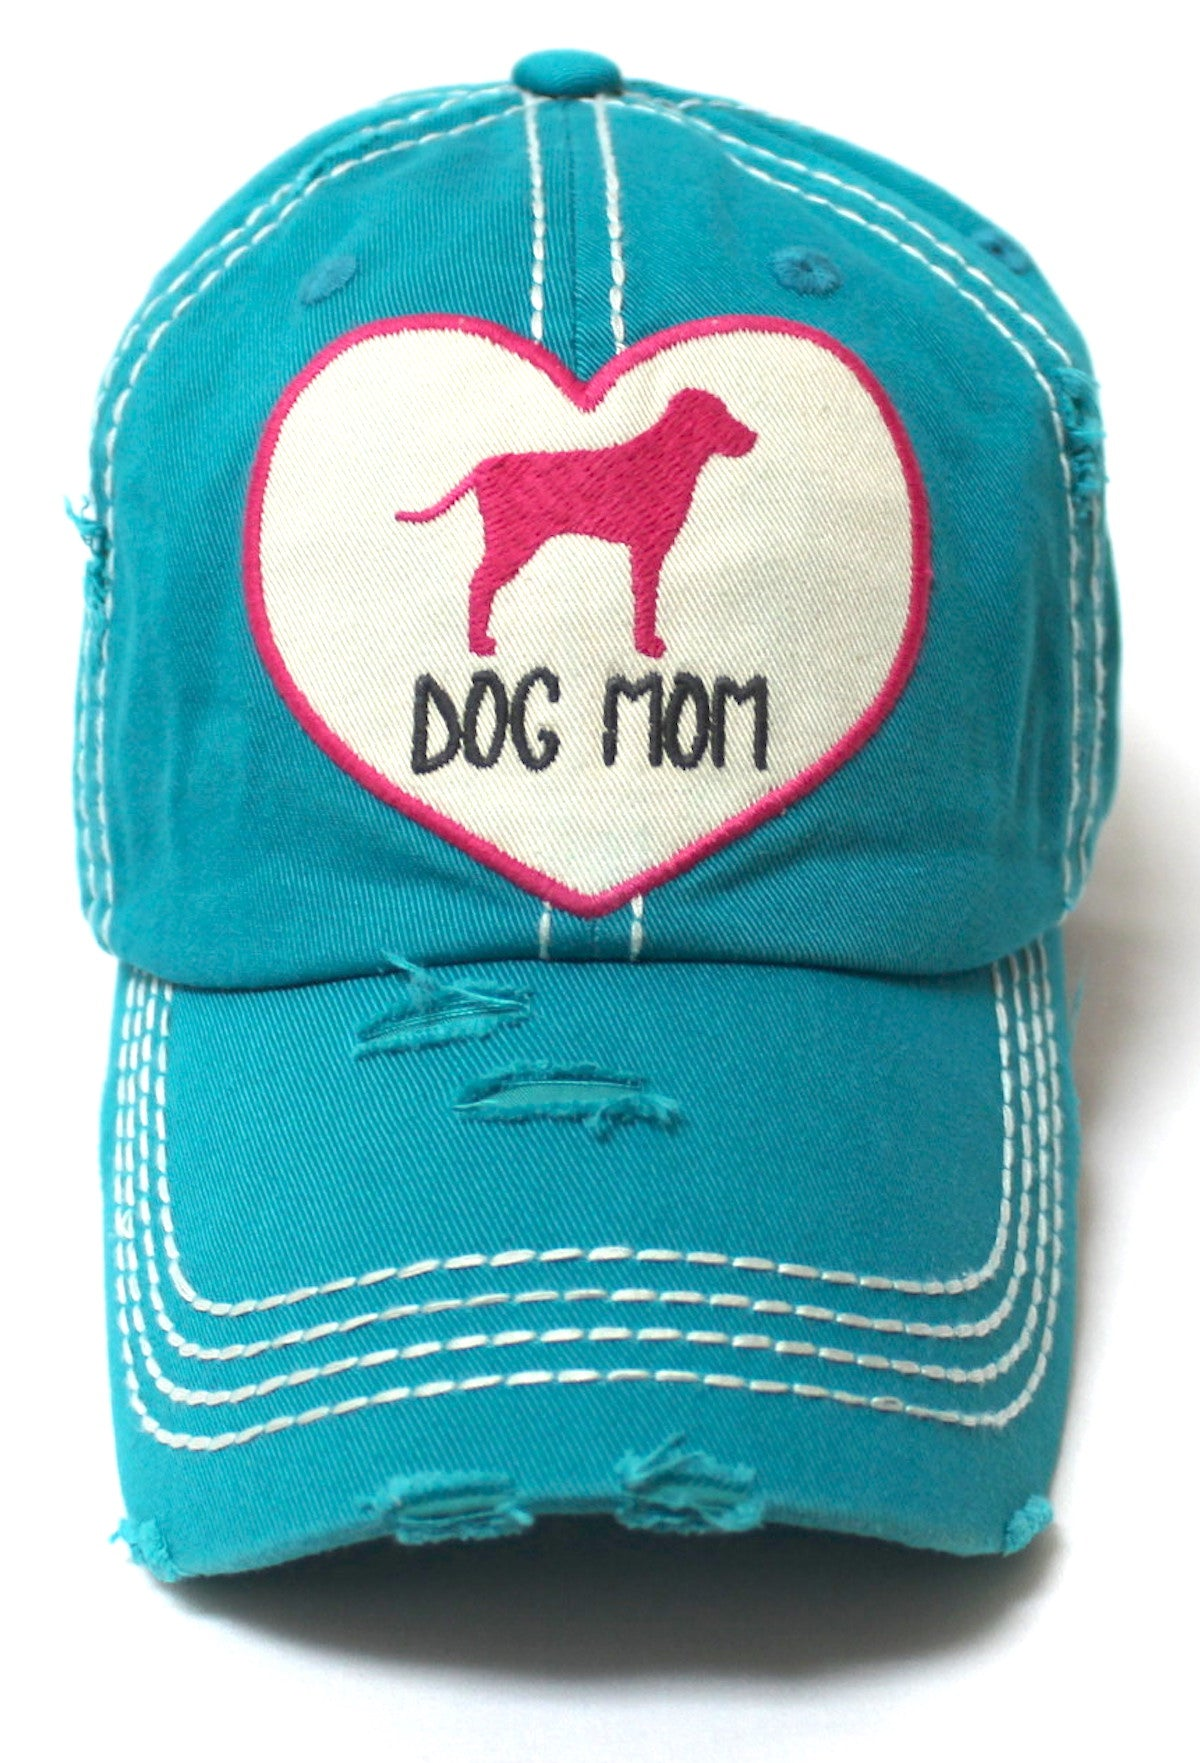 Women's Love Pink Cap Dog MOM Heart Patch Embroidery, Turquoise - Caps 'N Vintage